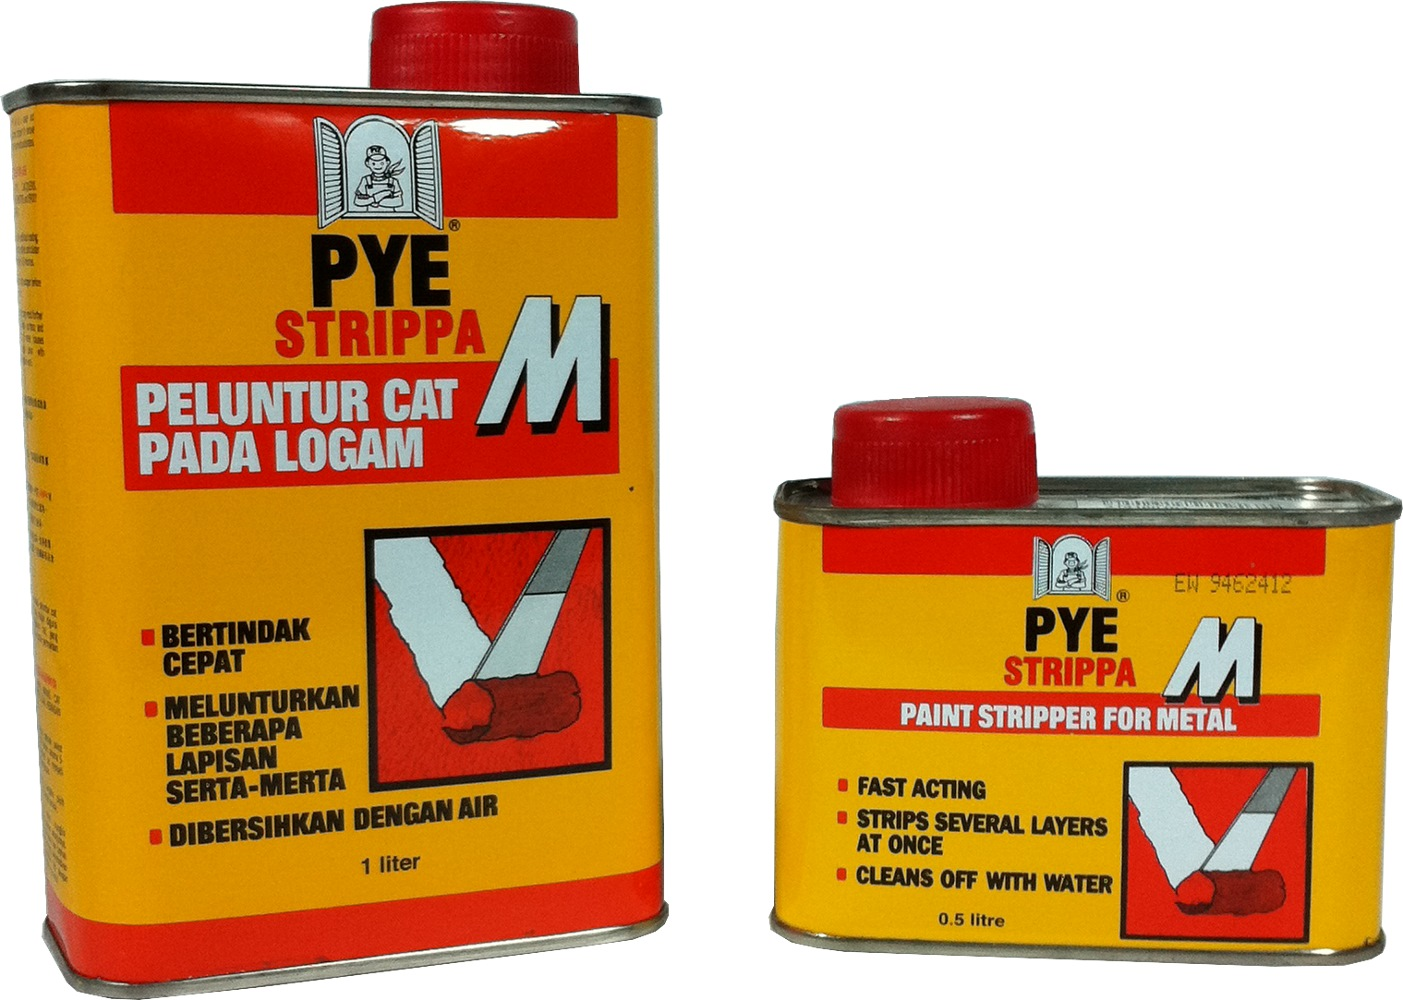 Pye Strippa-m Paint Stripper for Metal Surfaces Clear